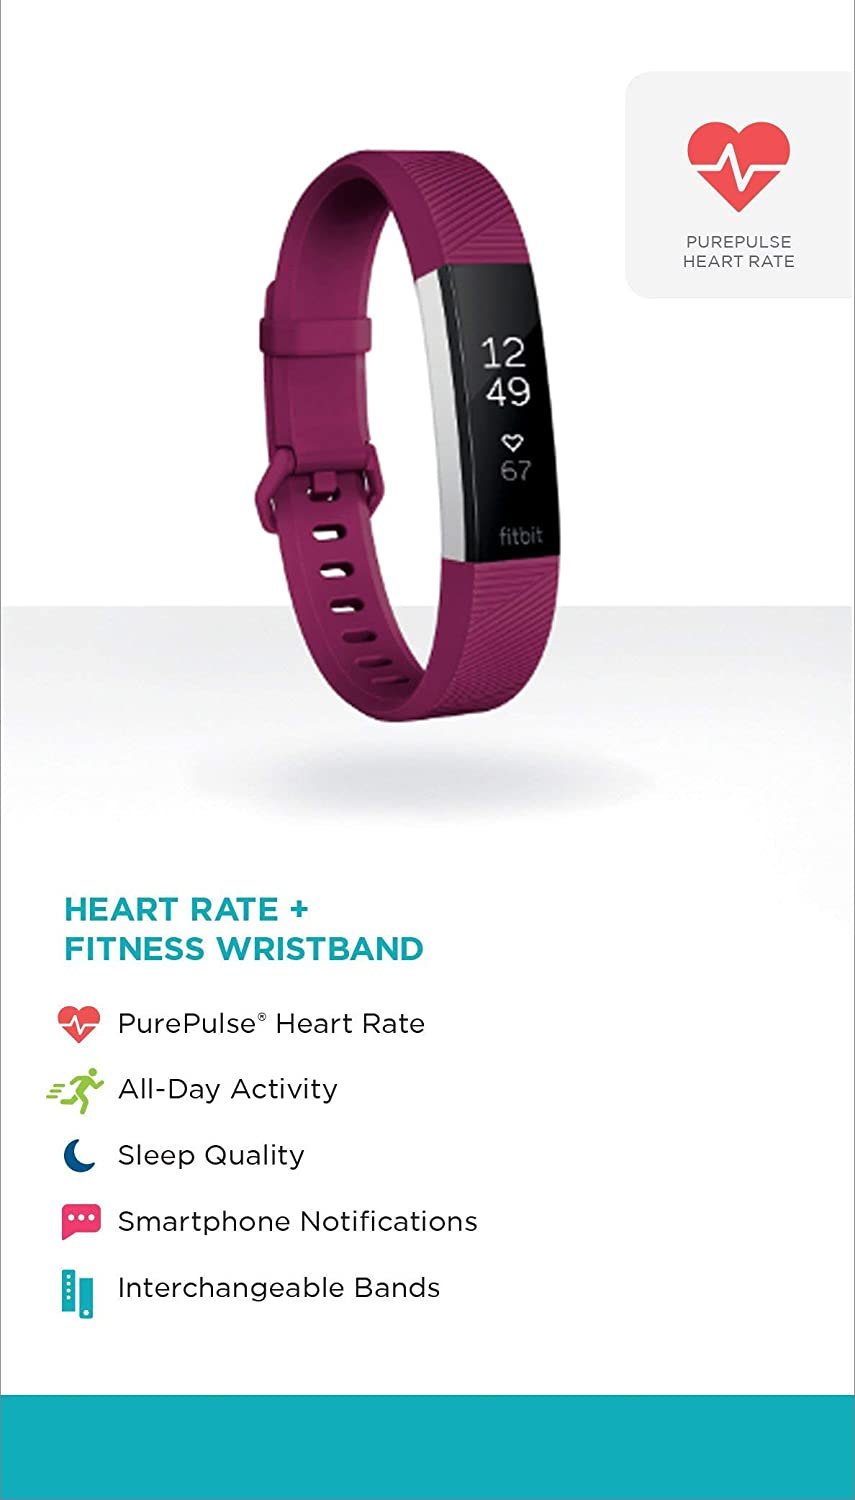 Amazon.com: Fitbit Alta HR, Fuchsia, Large (US Version) (Certified Refurbished): Health & Personal Care